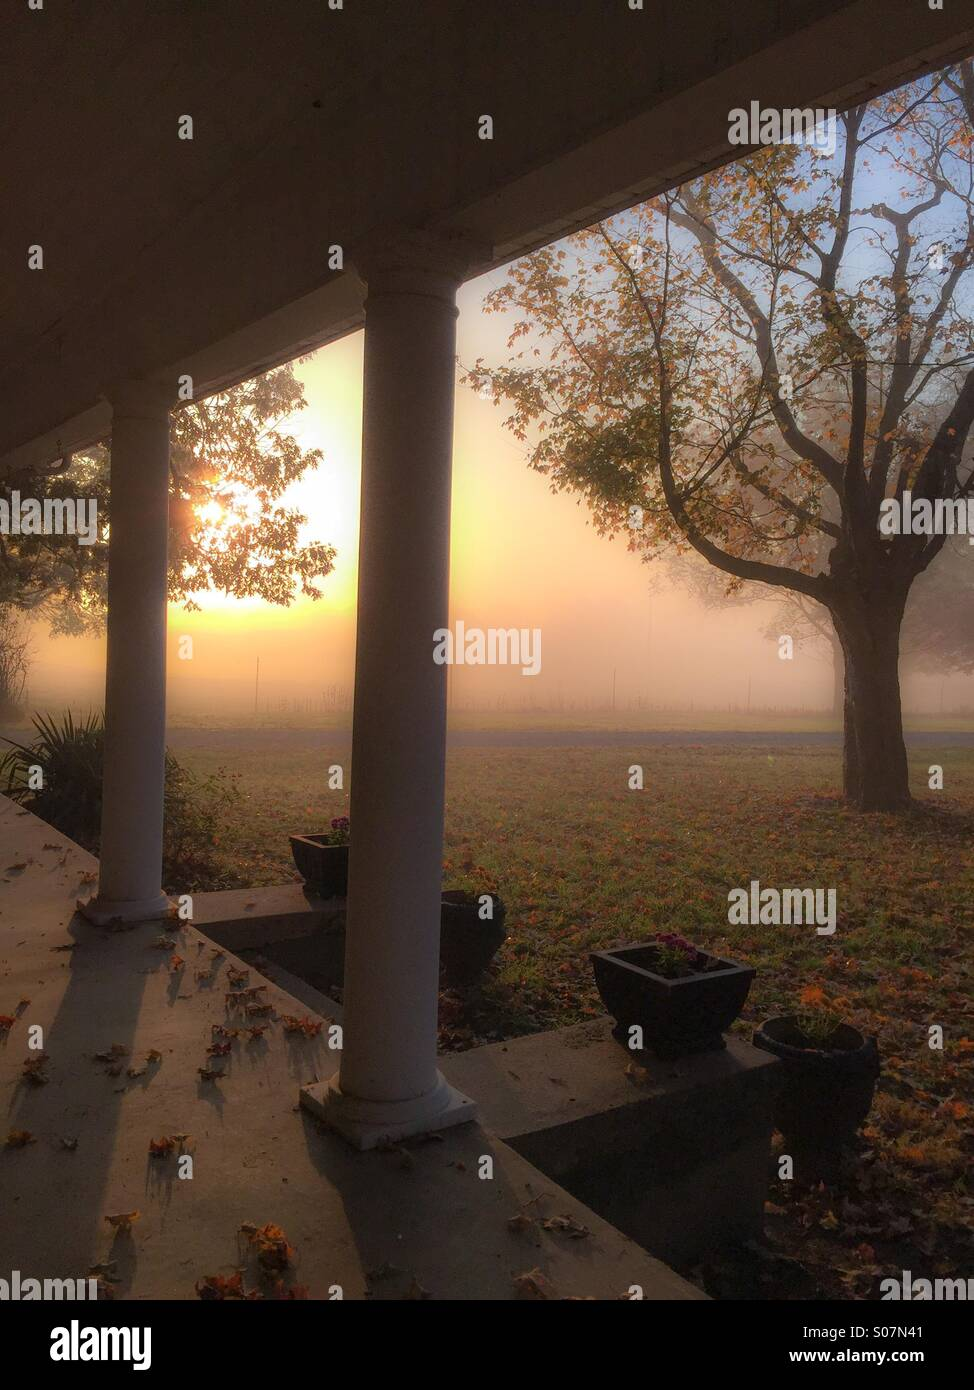 Country living accentuated by a foggy Autumn morning from the front porch. - Stock Image